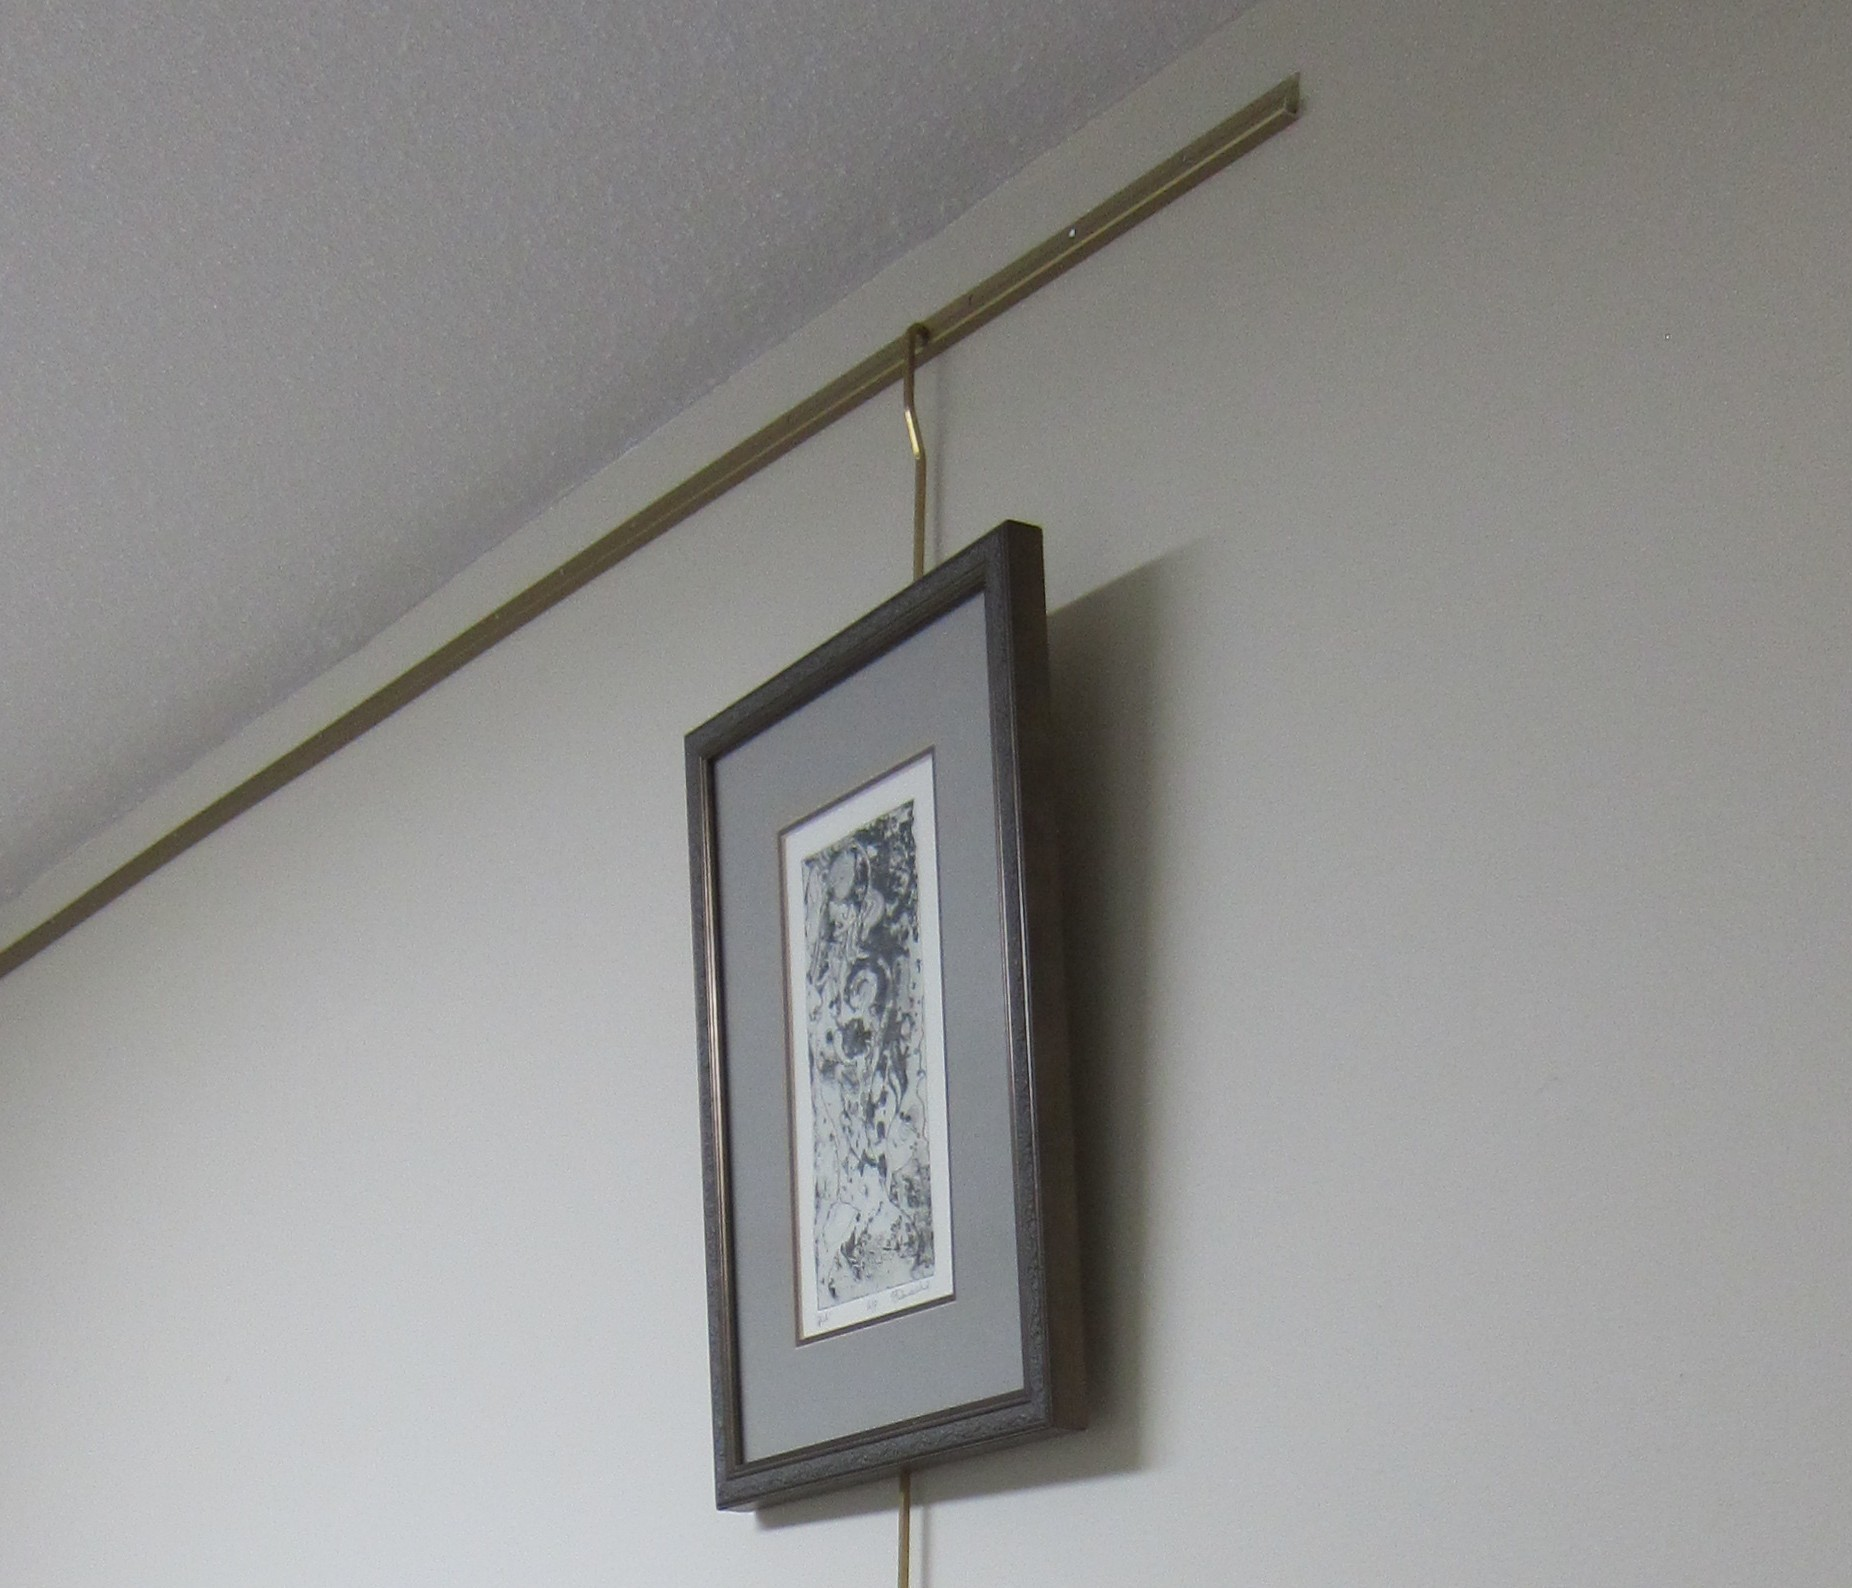 picture hanging rods